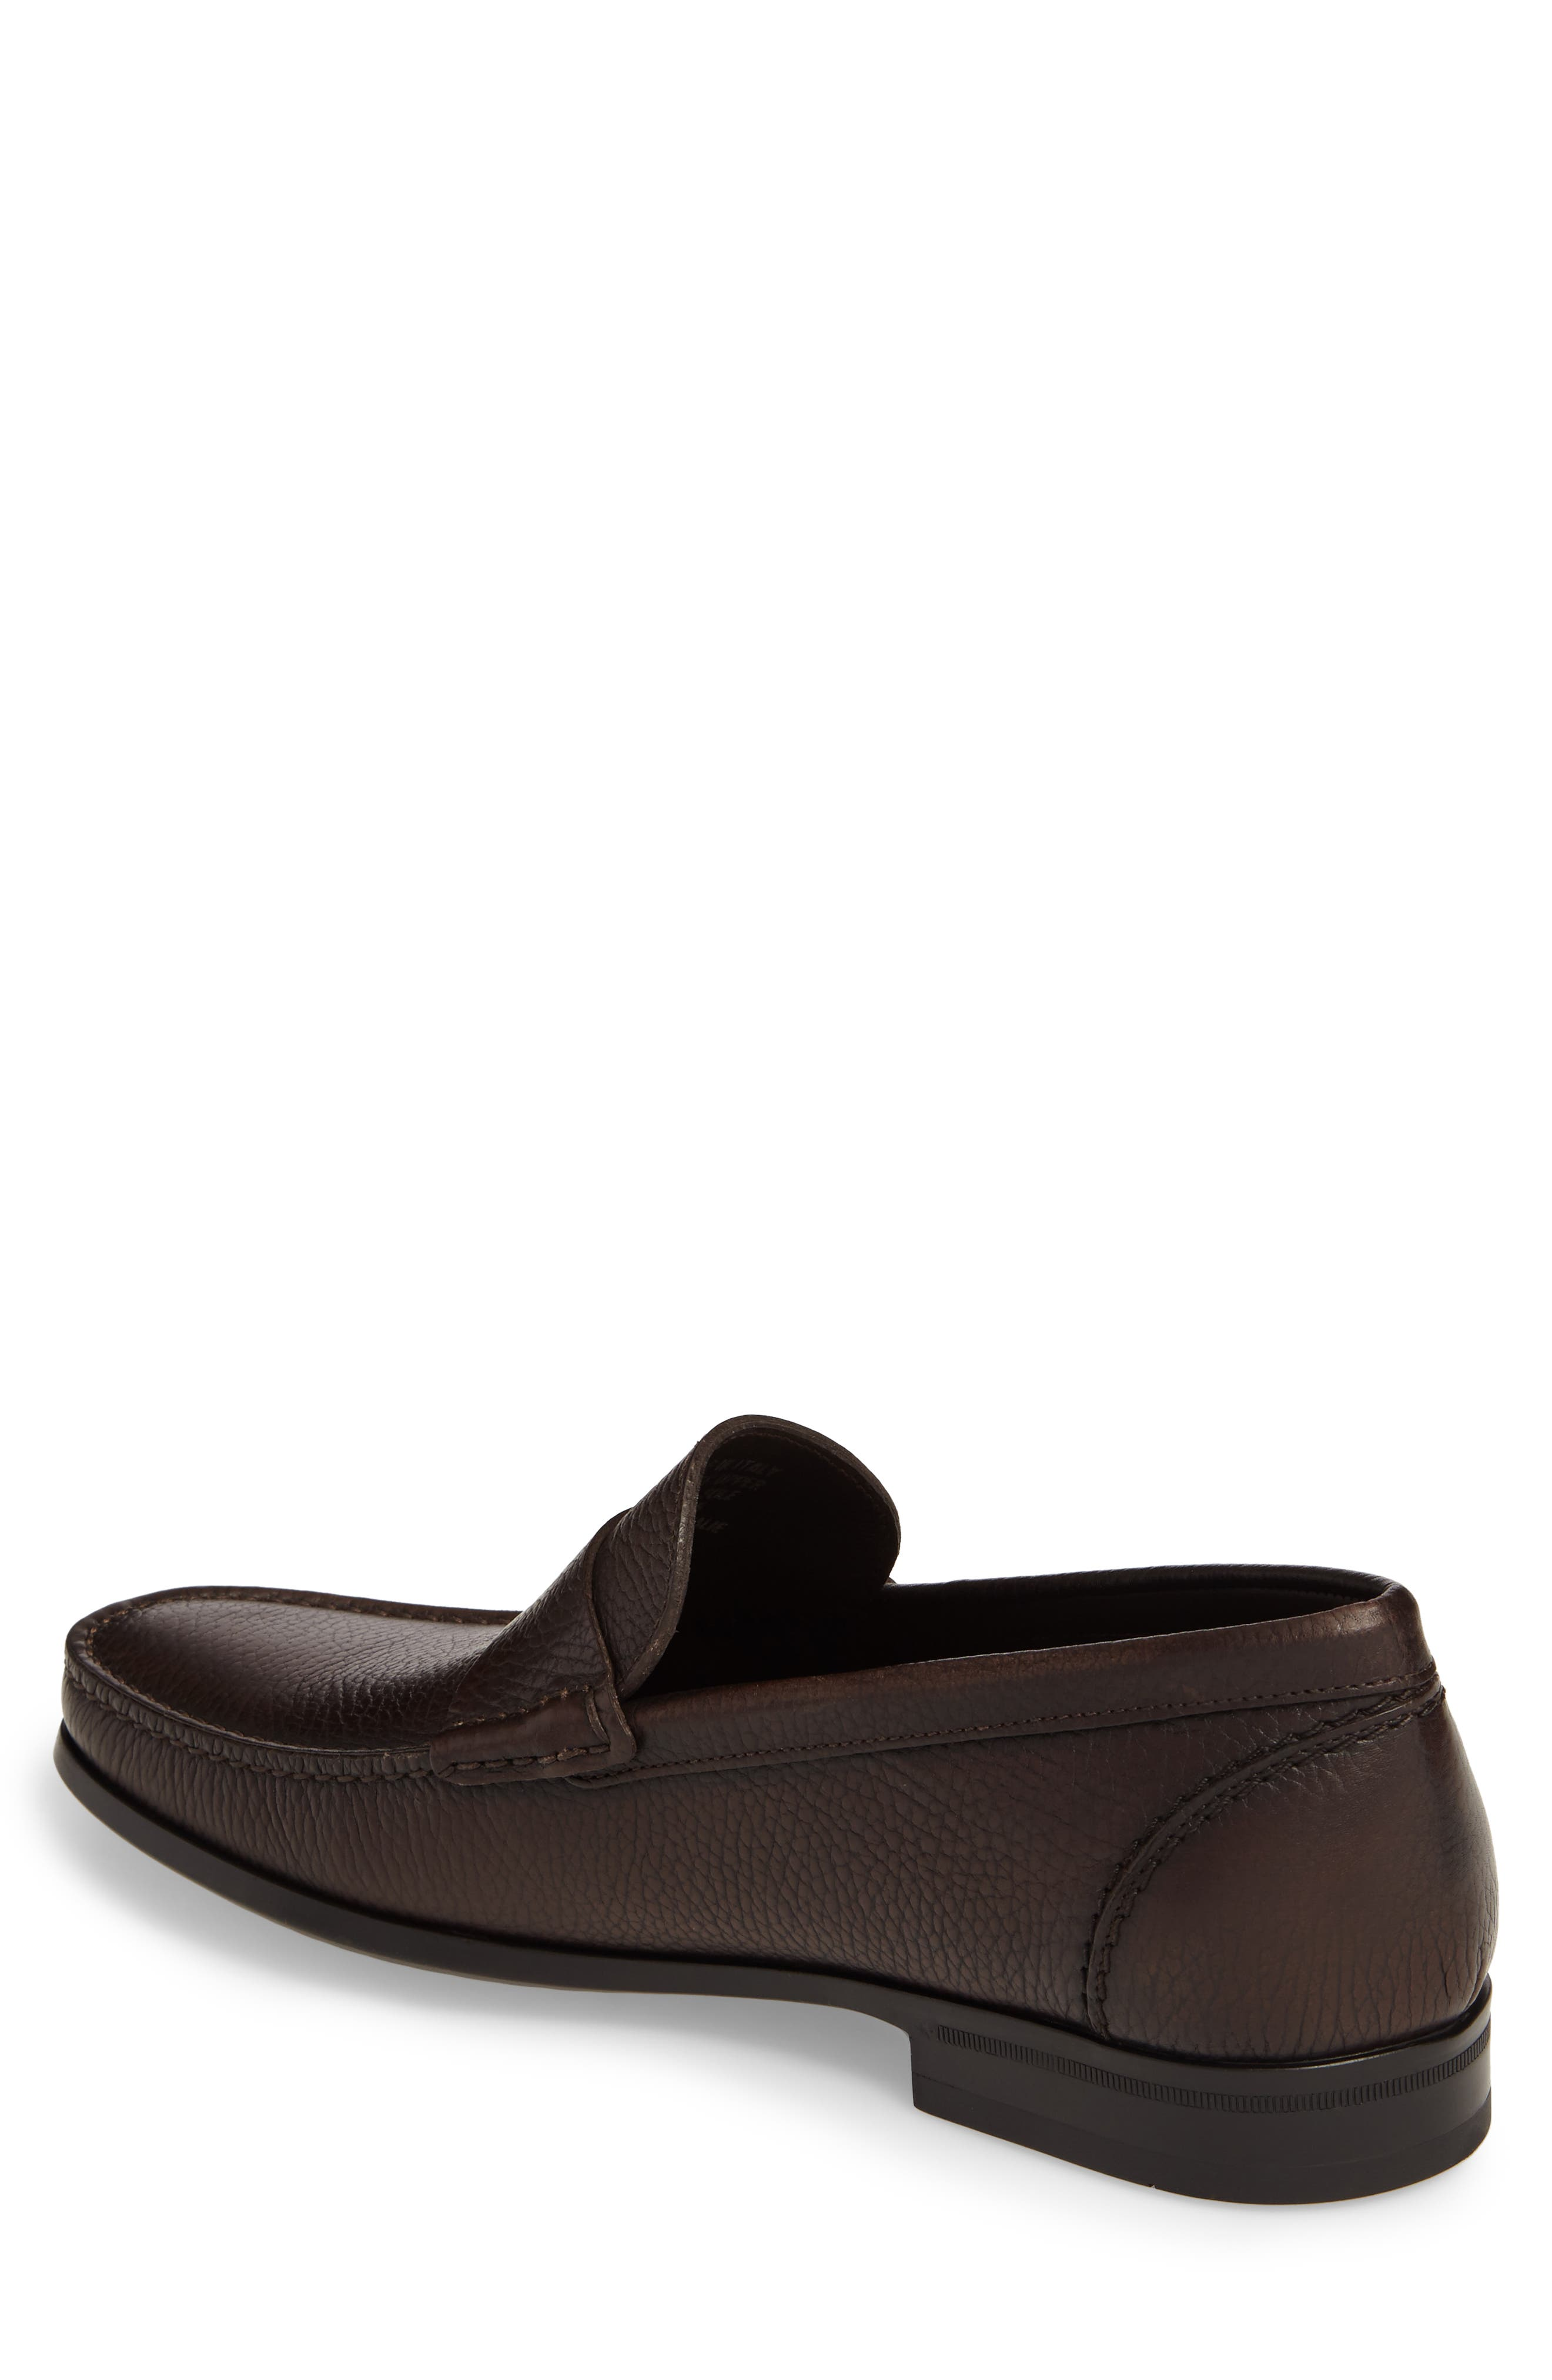 Savona Loafer,                             Alternate thumbnail 2, color,